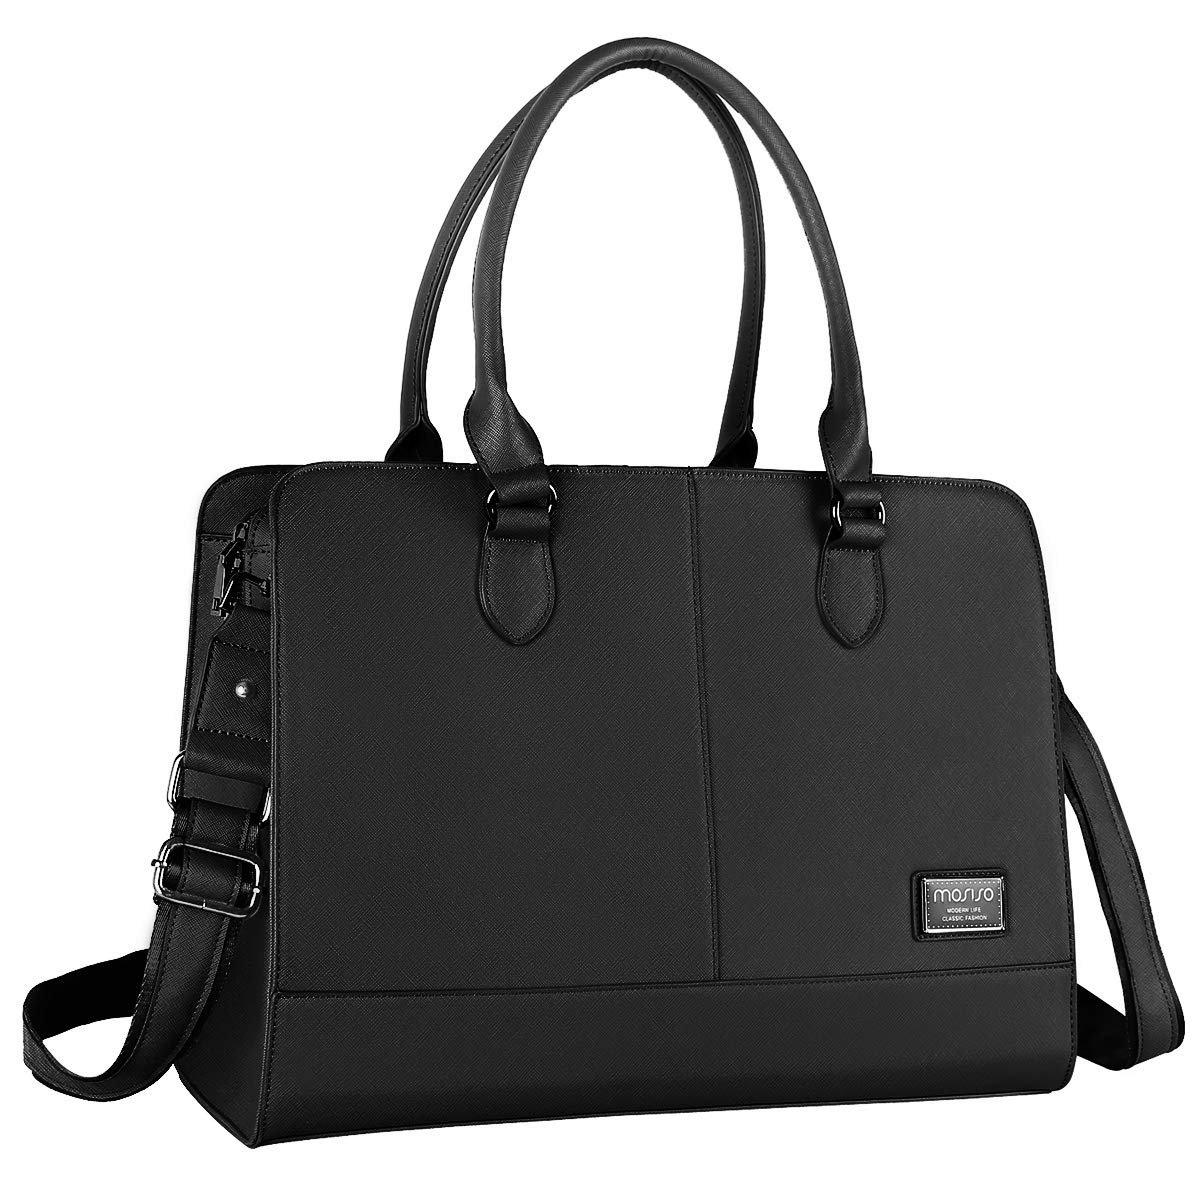 MOSISO Women Laptop Tote Bag (Up to 15.6 Inch) 3 Layer Compartments, Black by MOSISO